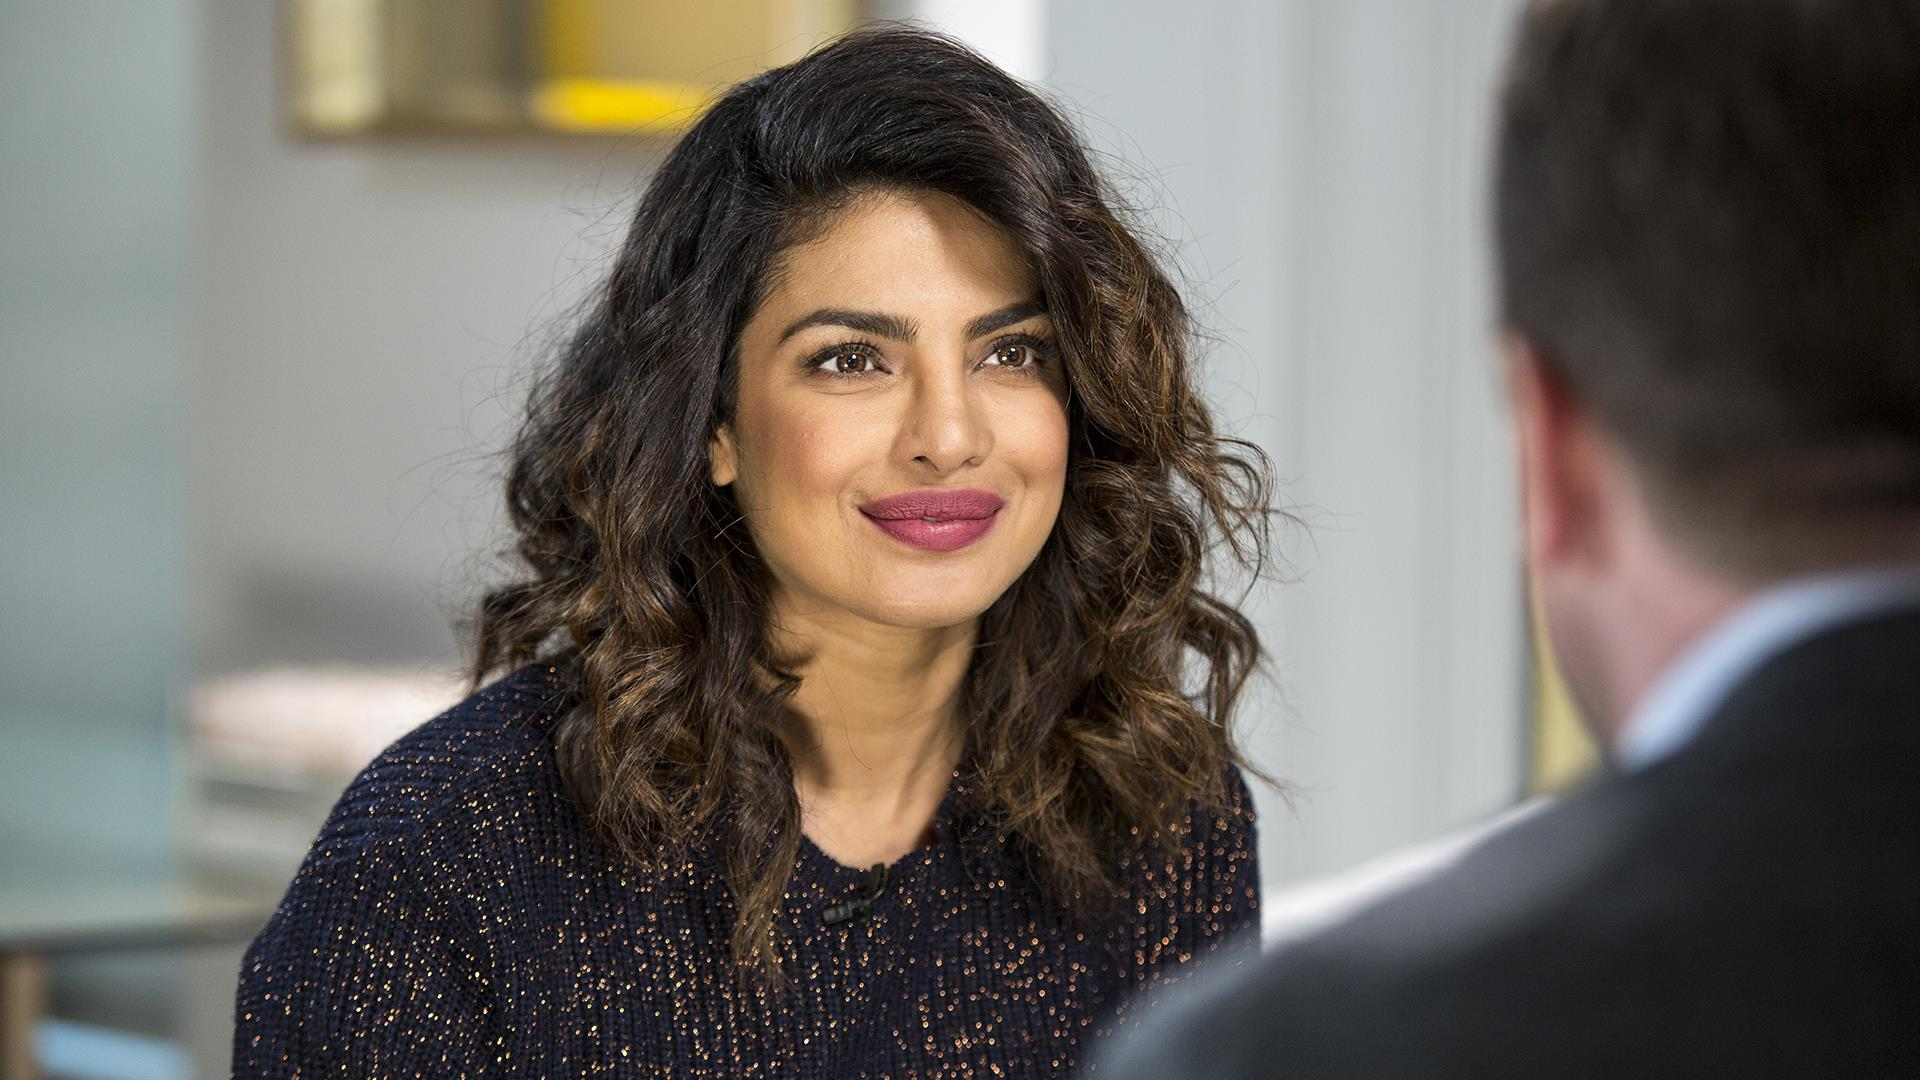 Watch Priyanka Chopra lost a role for being too ethnic' and she's not standing for it video